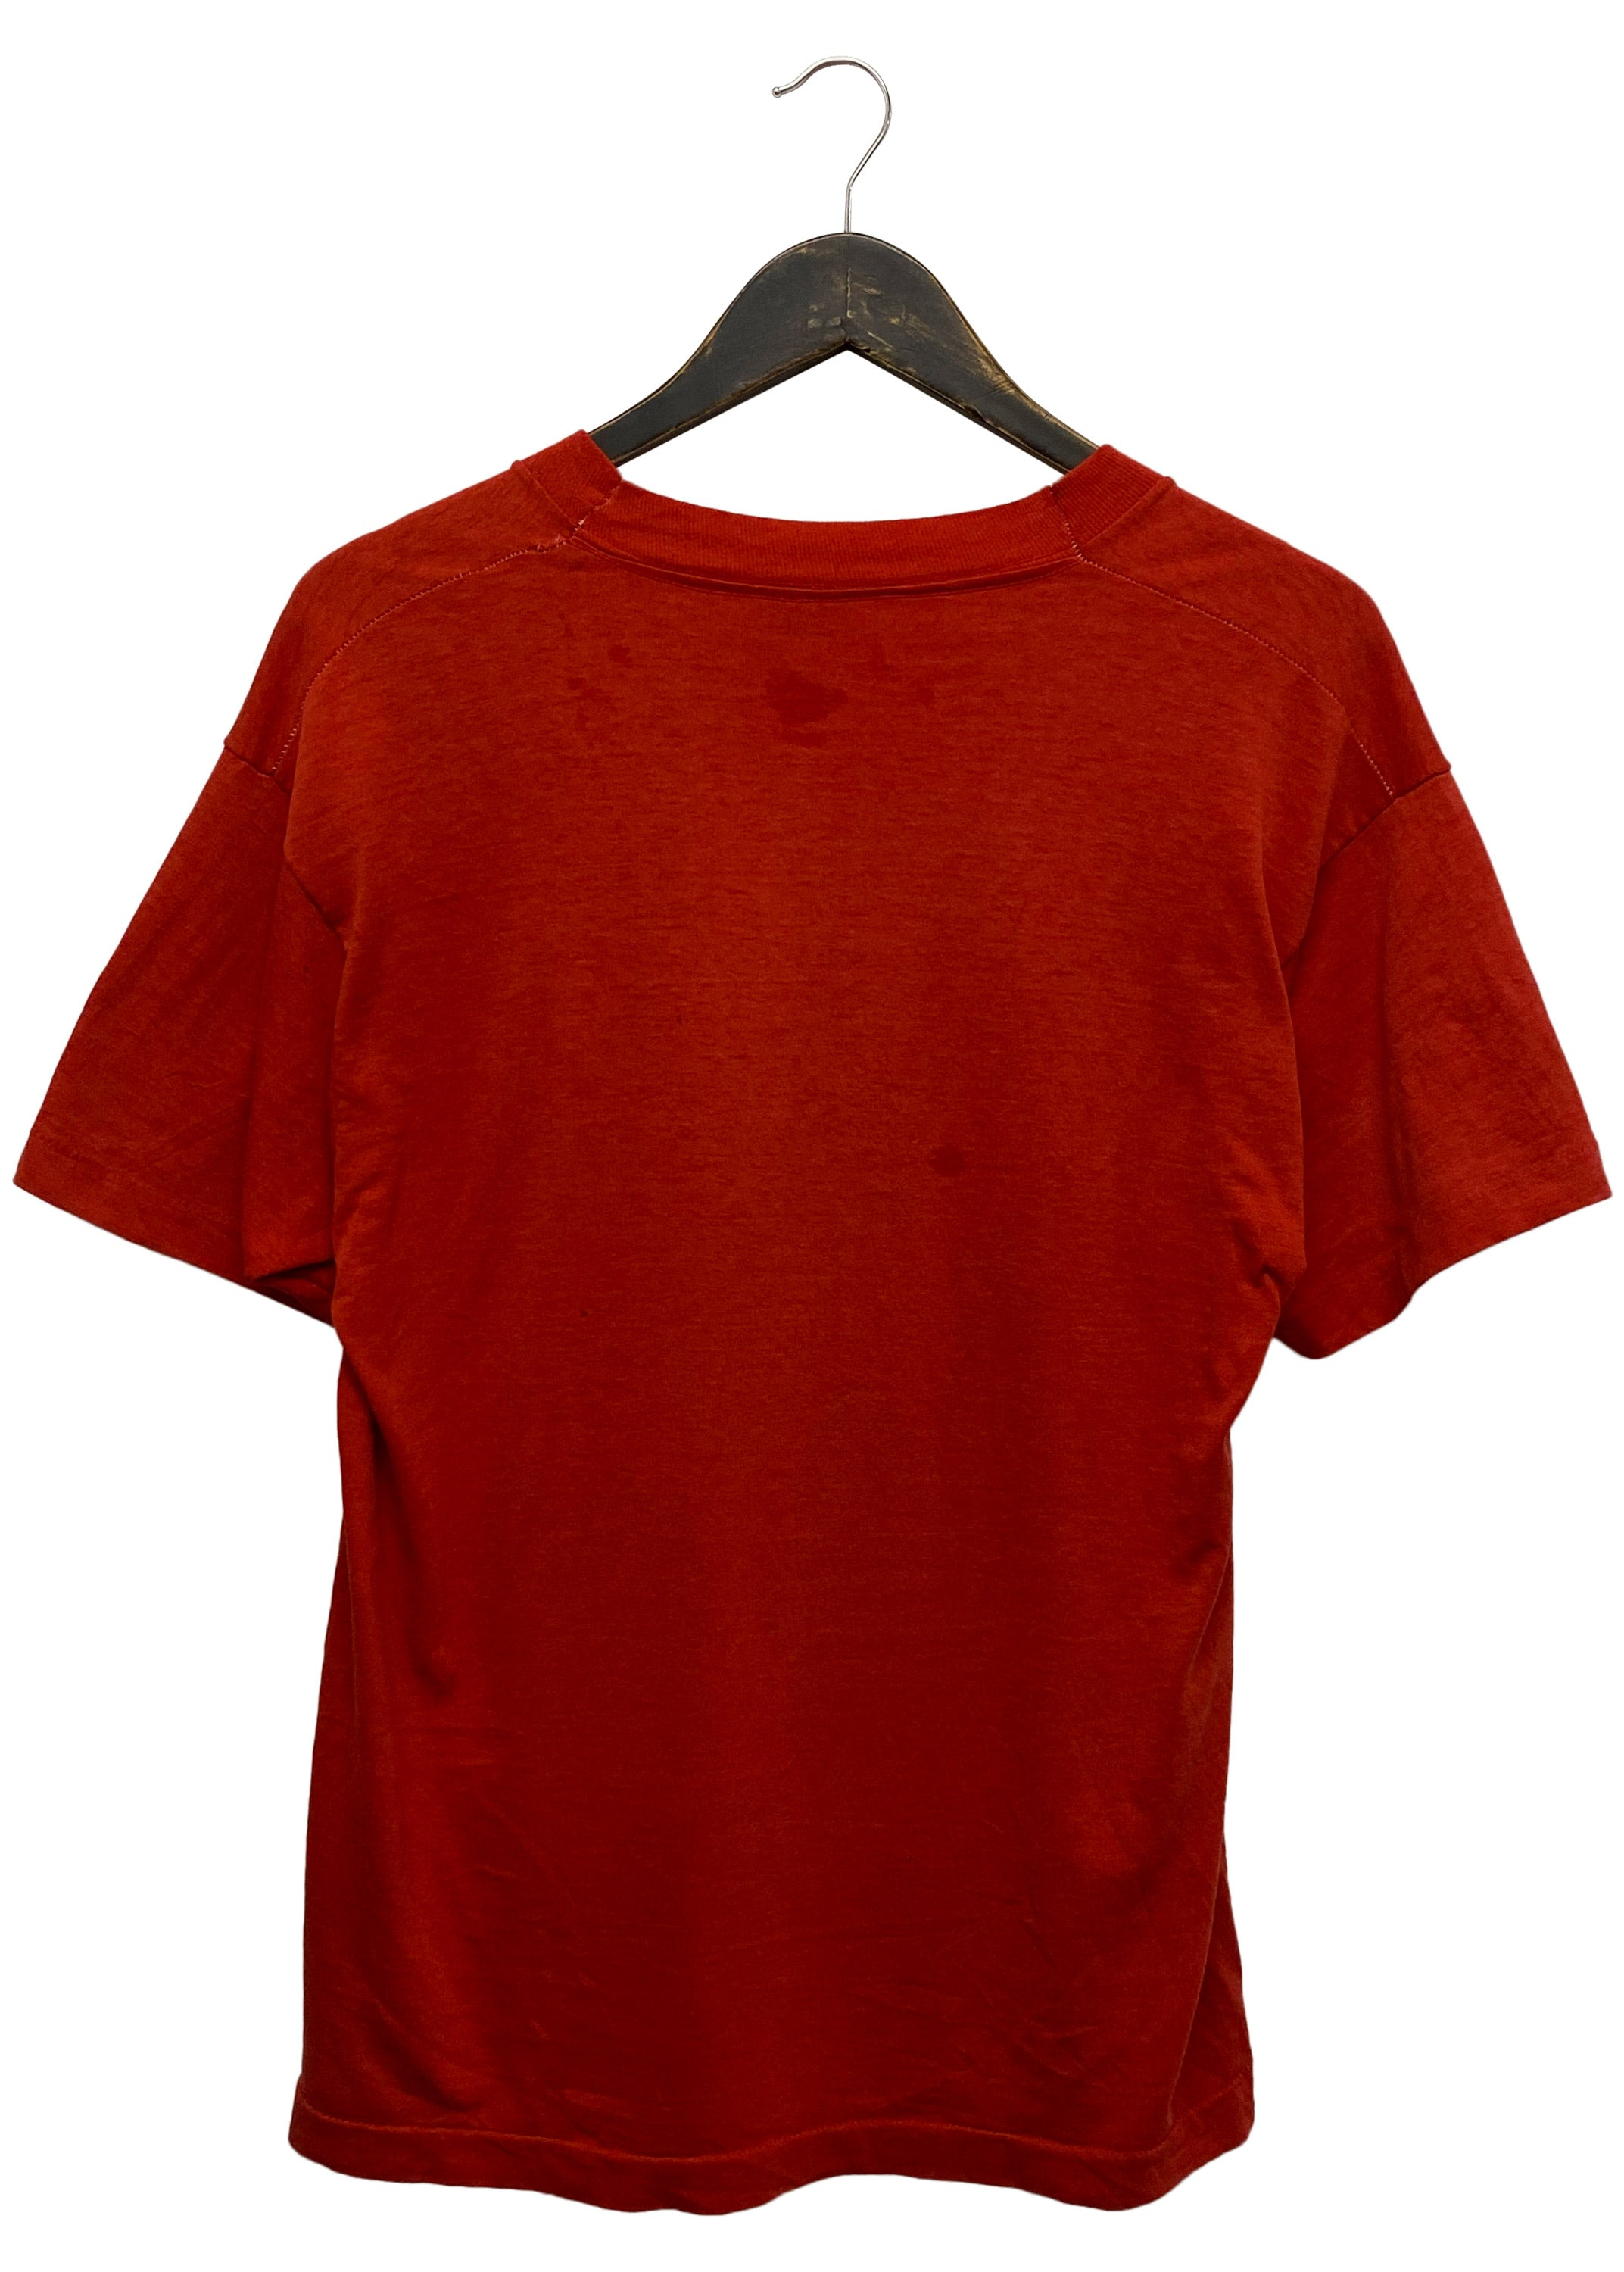 THE MOUNTAIN 'WIZARD' VINTAGE TEE